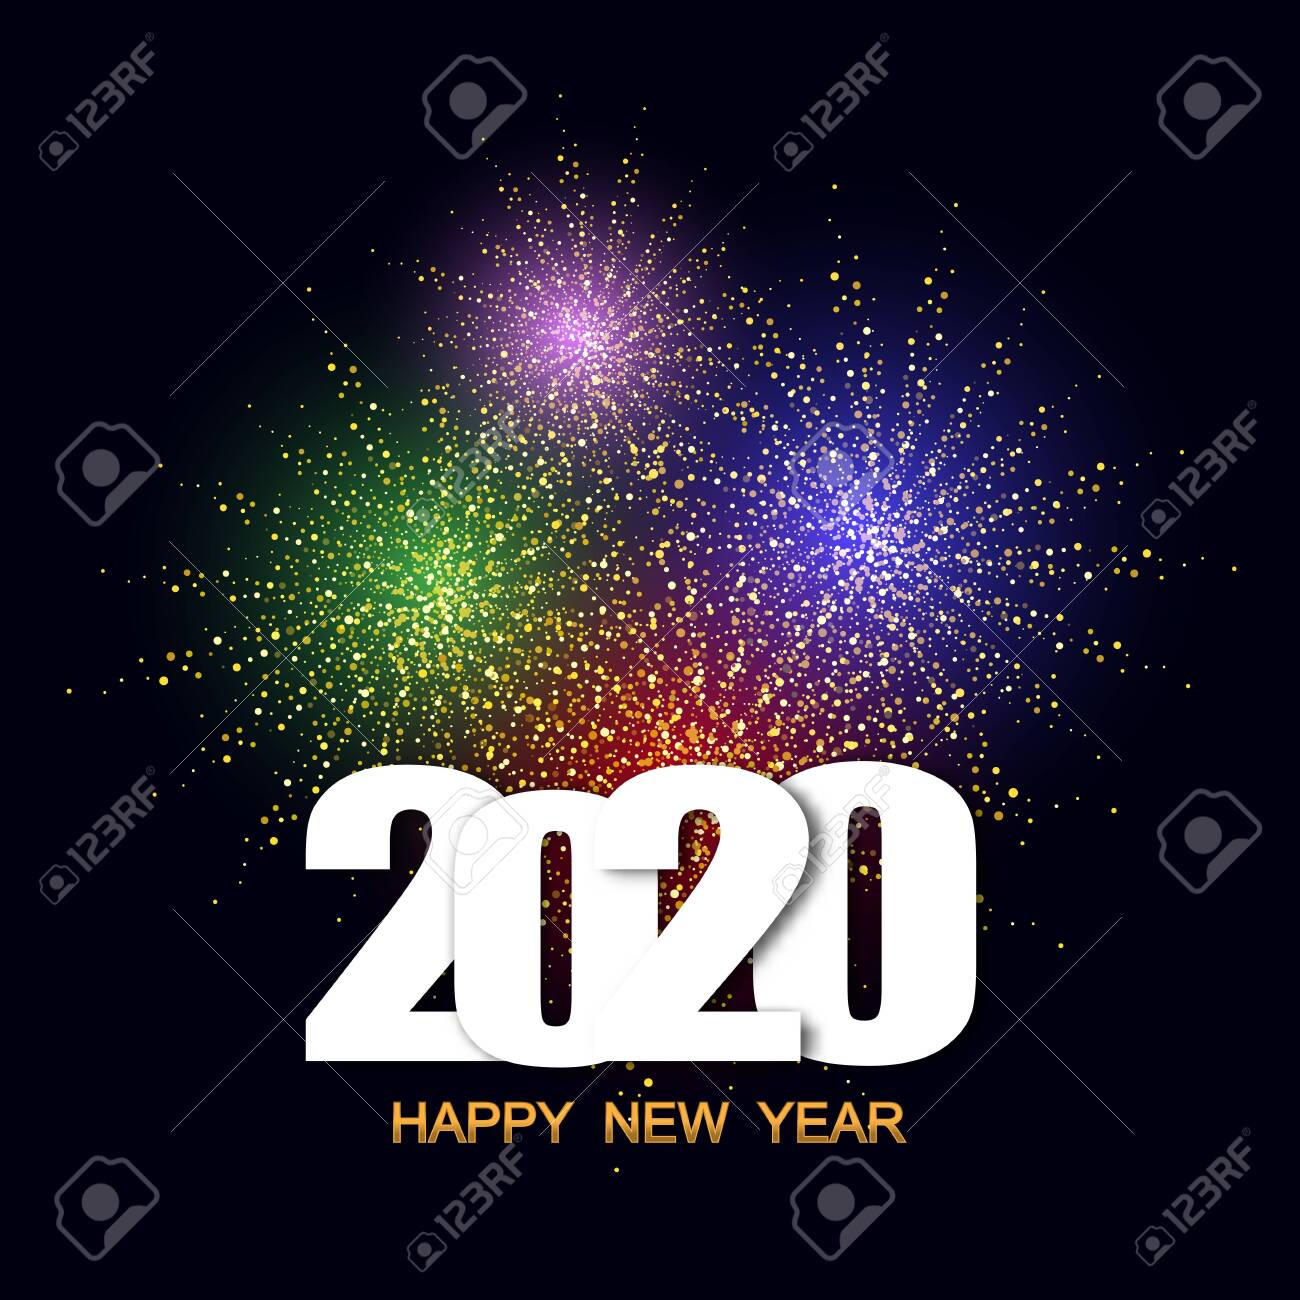 Happy New Year 2020 festival with colorful fireworks background.Greeting card and party poster.Celebration and cheerful holiday. eps10 - 141603443